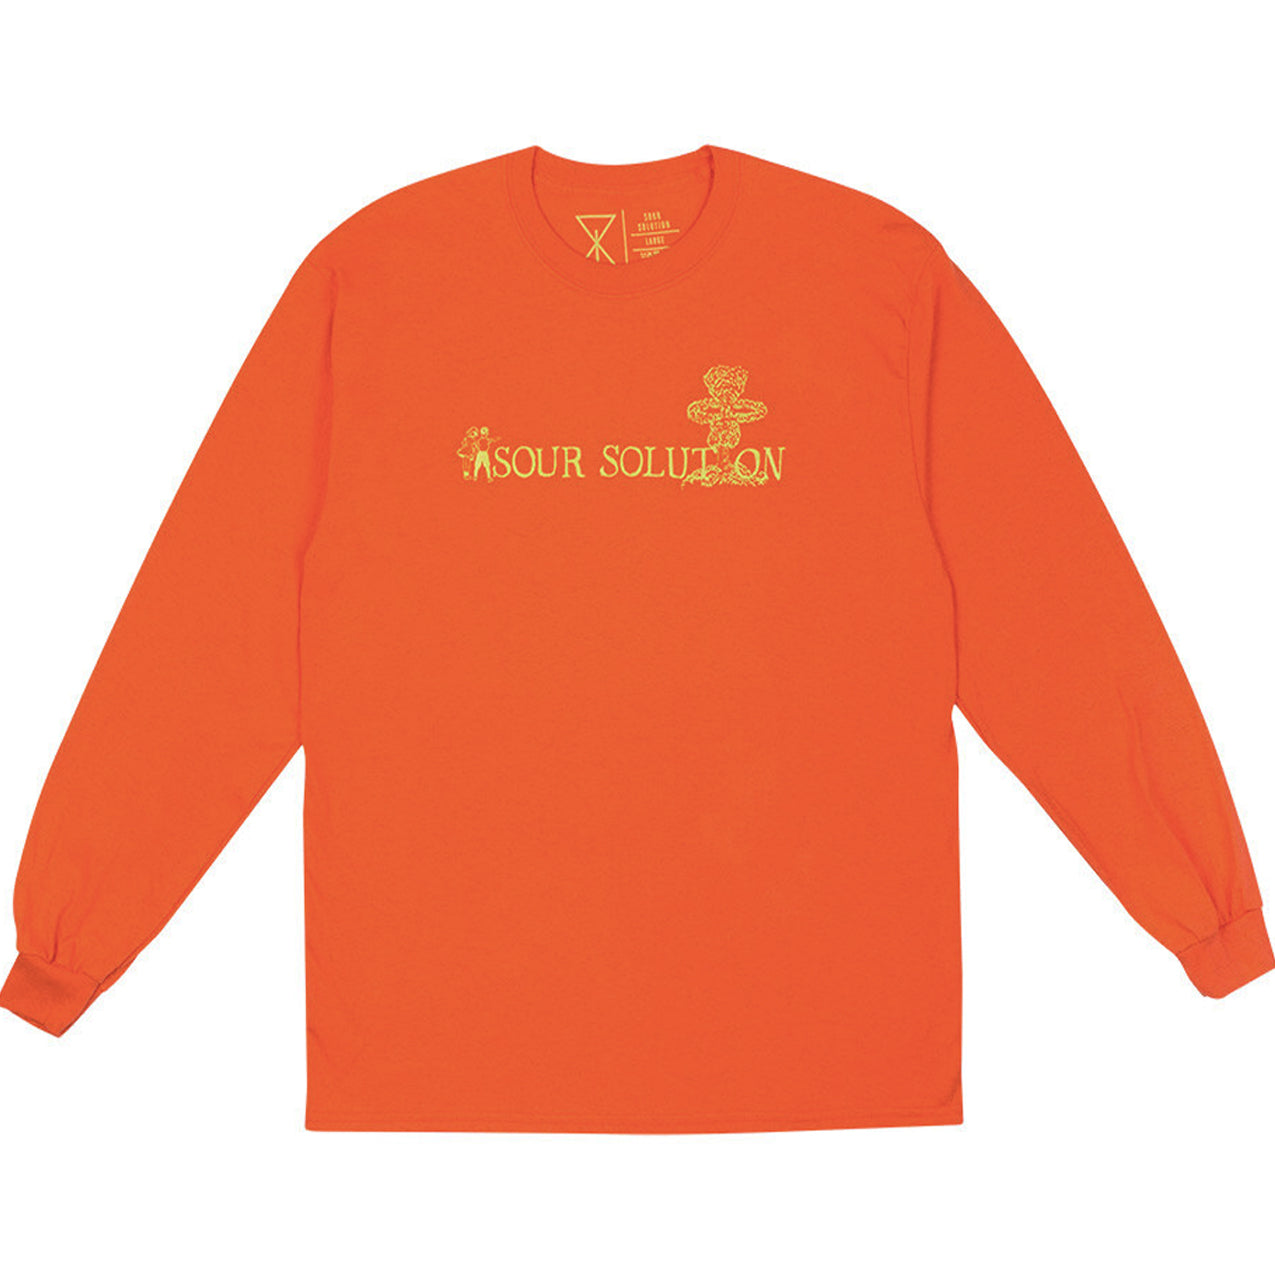 Sour Solution - Nuclear Long Sleeve - Orange